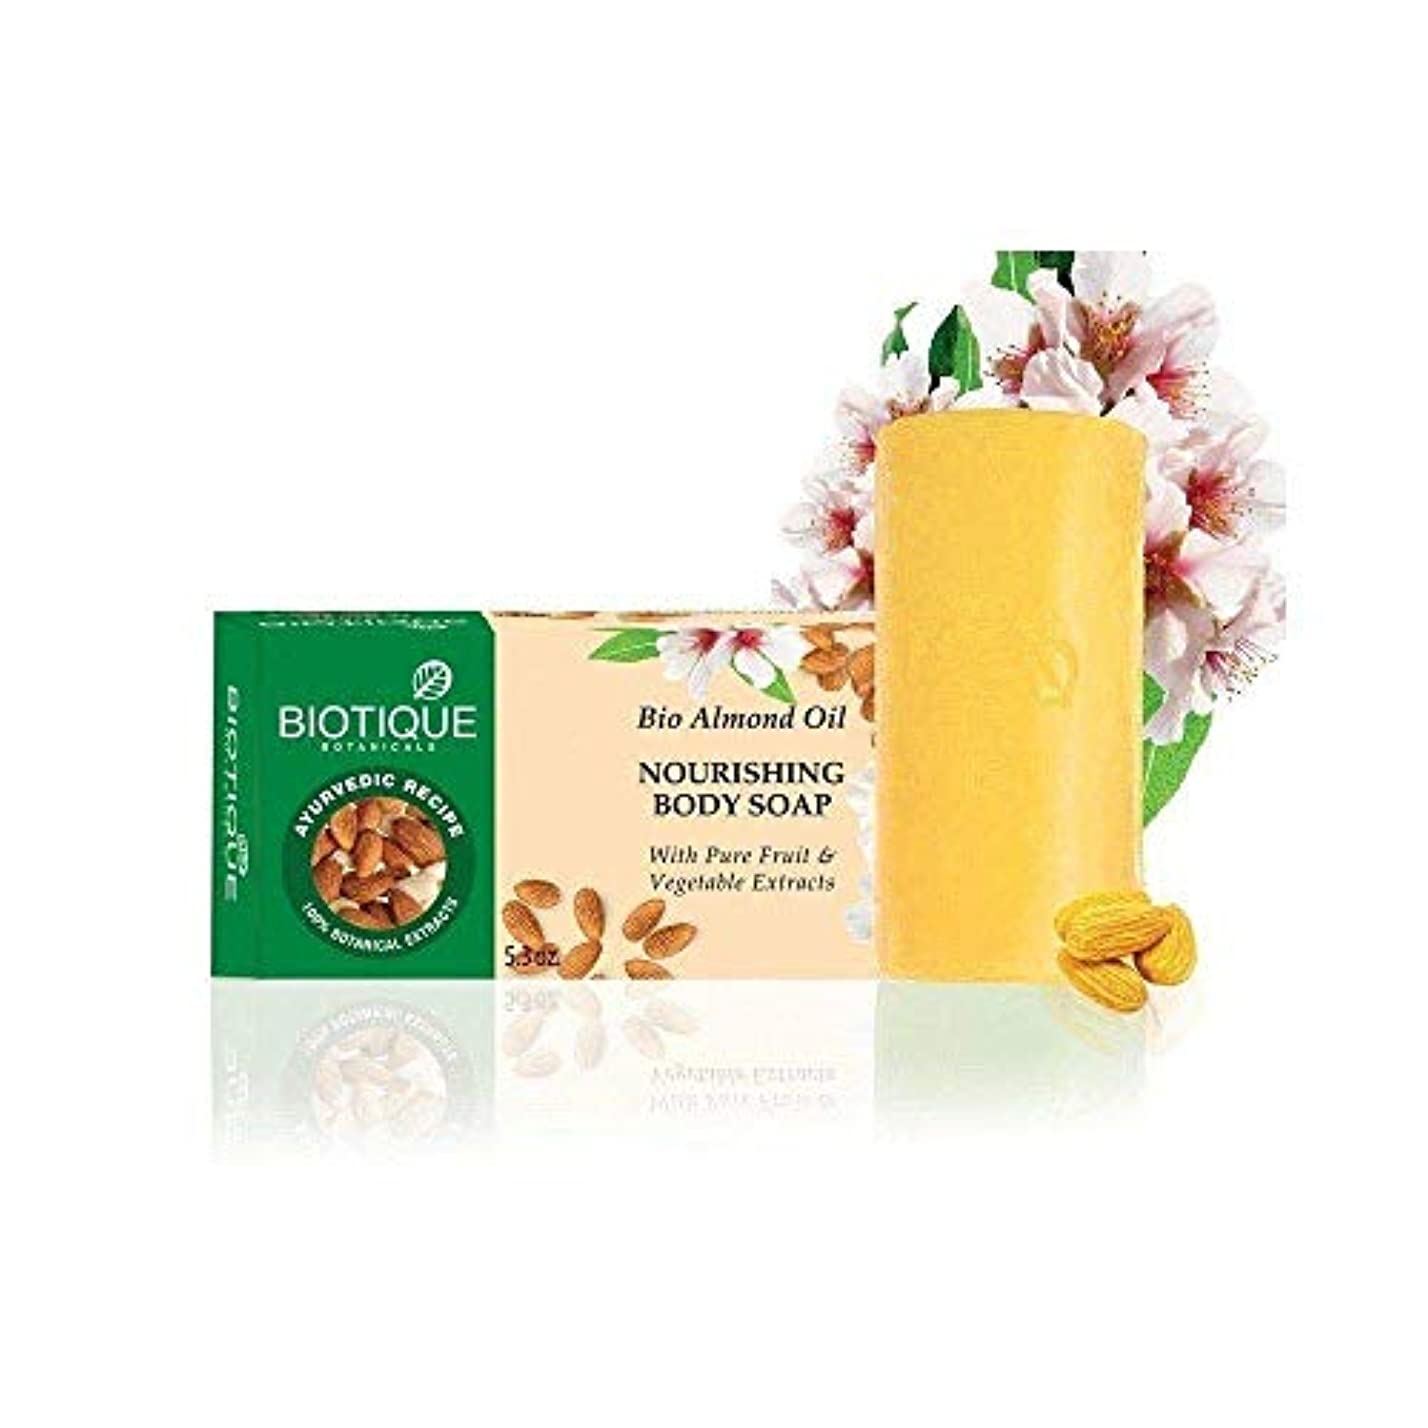 送料公式親指Biotique Bio Almond Oil Nourishing Body Soap - 150g (Pack of 2) wash Impurities Biotique Bio Almond Oilナリッシングボディソープ...